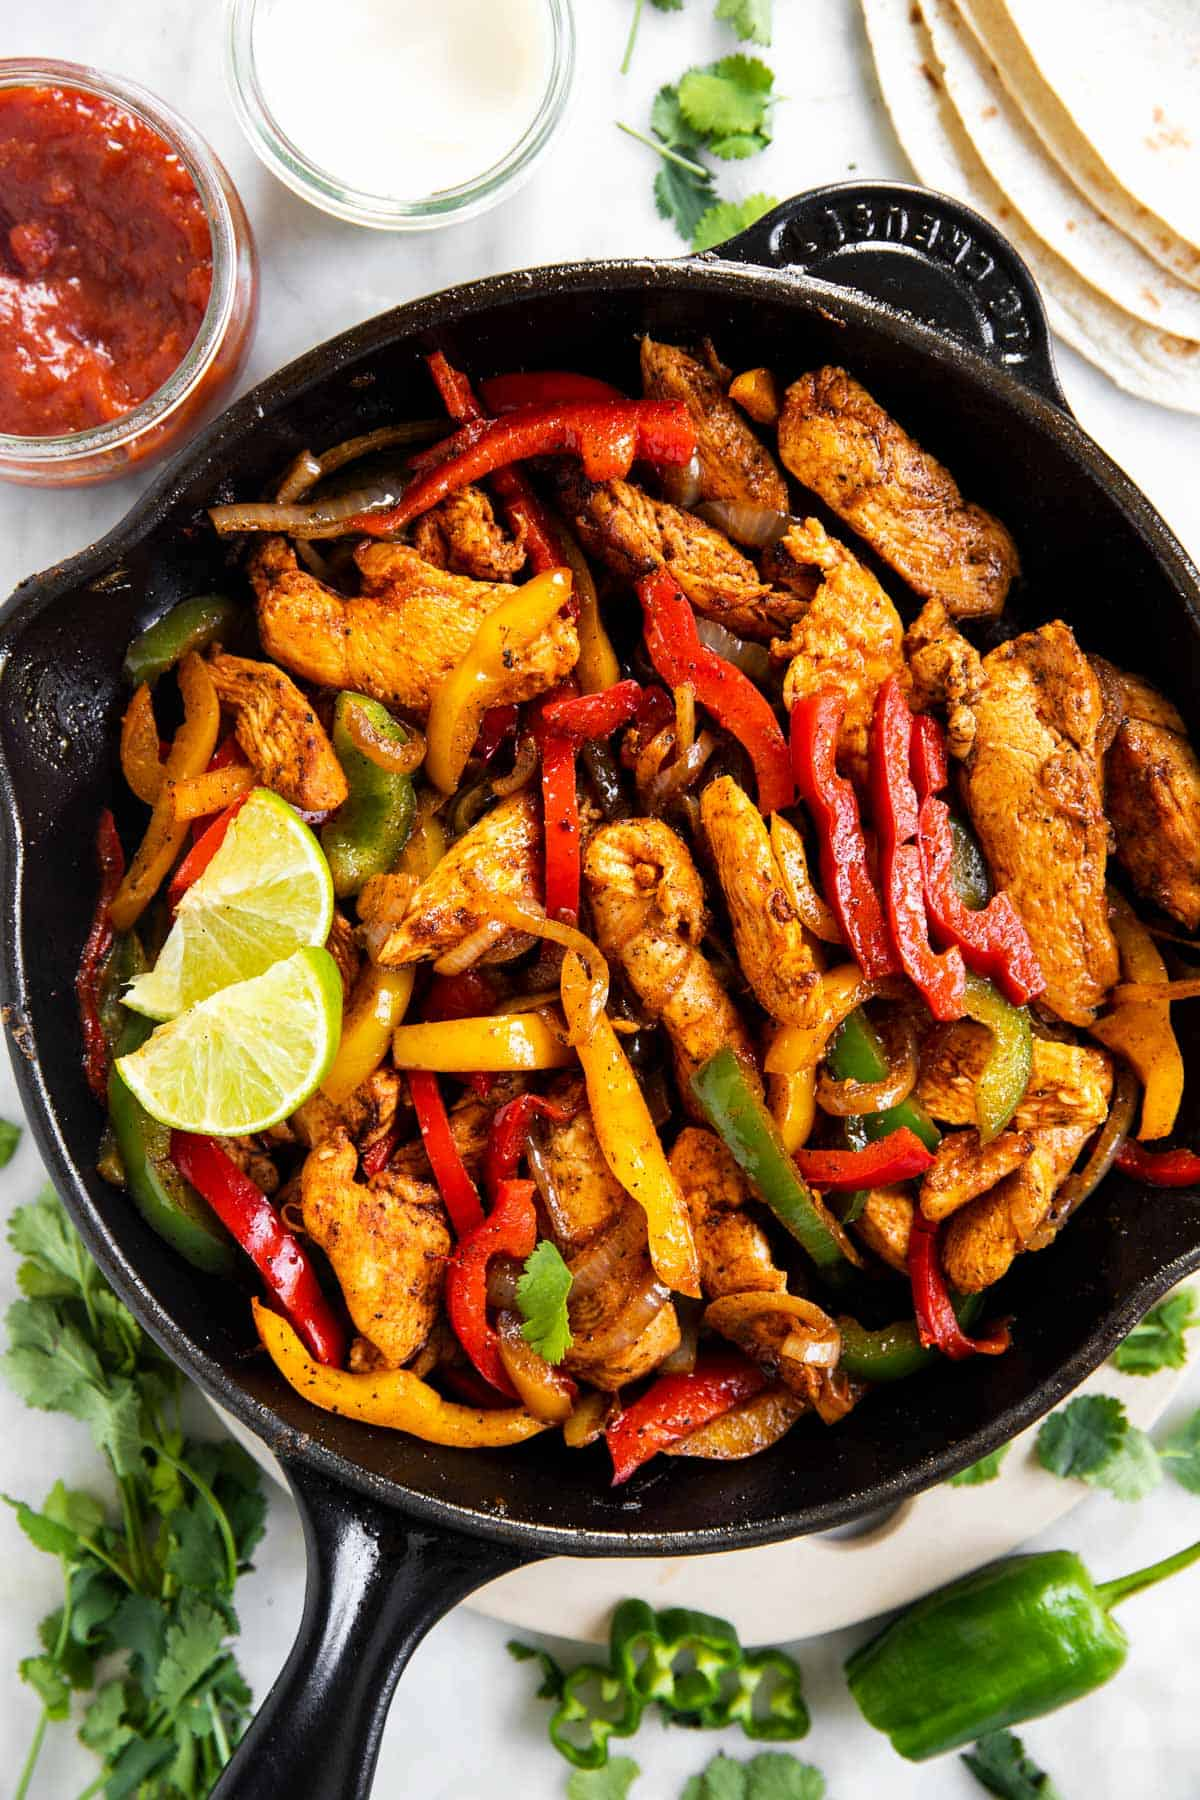 overhead view of chicken fajita filling in black cast iron skillet, surrounded by fajita toppings